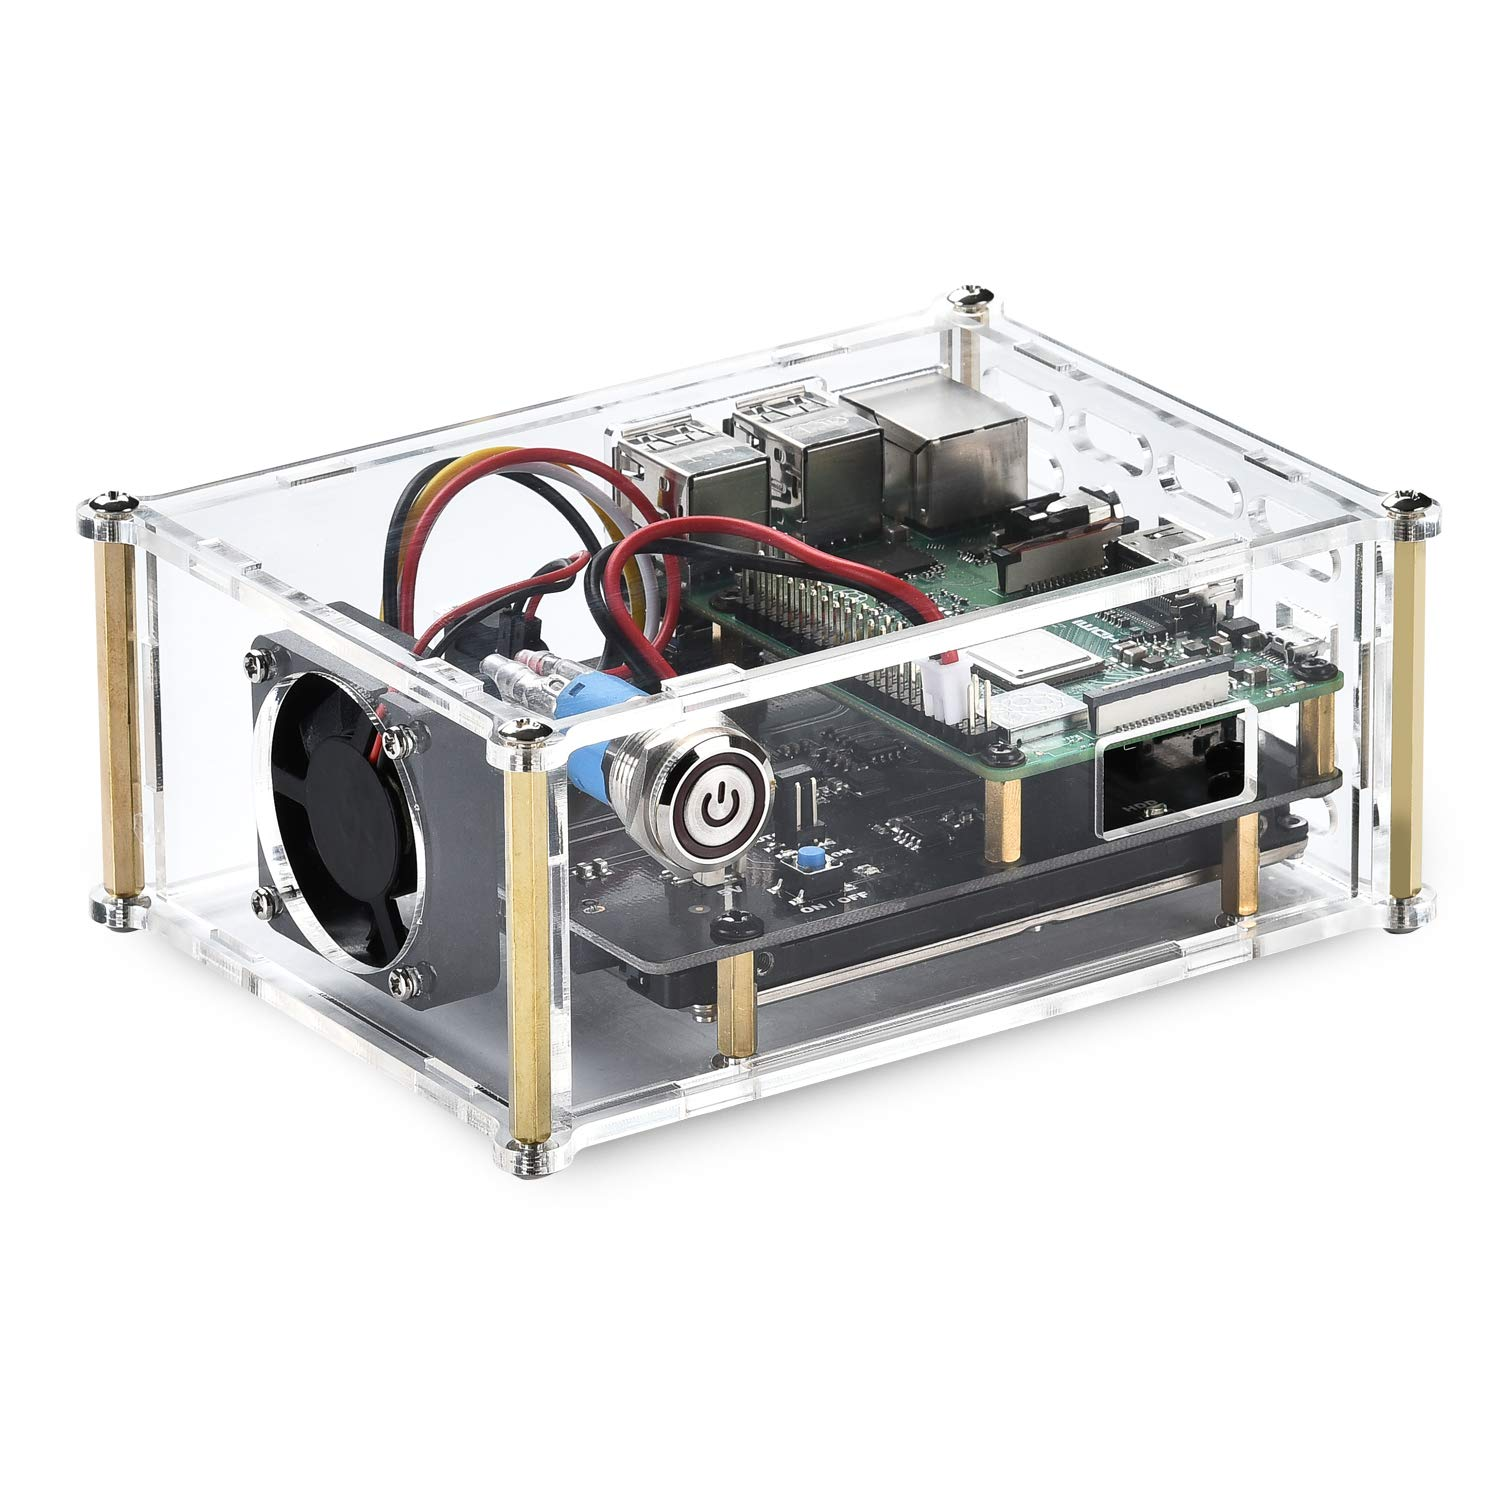 Acrylic Case with Cooling Fan for Raspberry Pi X820 V3.0 2.5'' SATA HDD/SSD Shield Expansion Board Kit